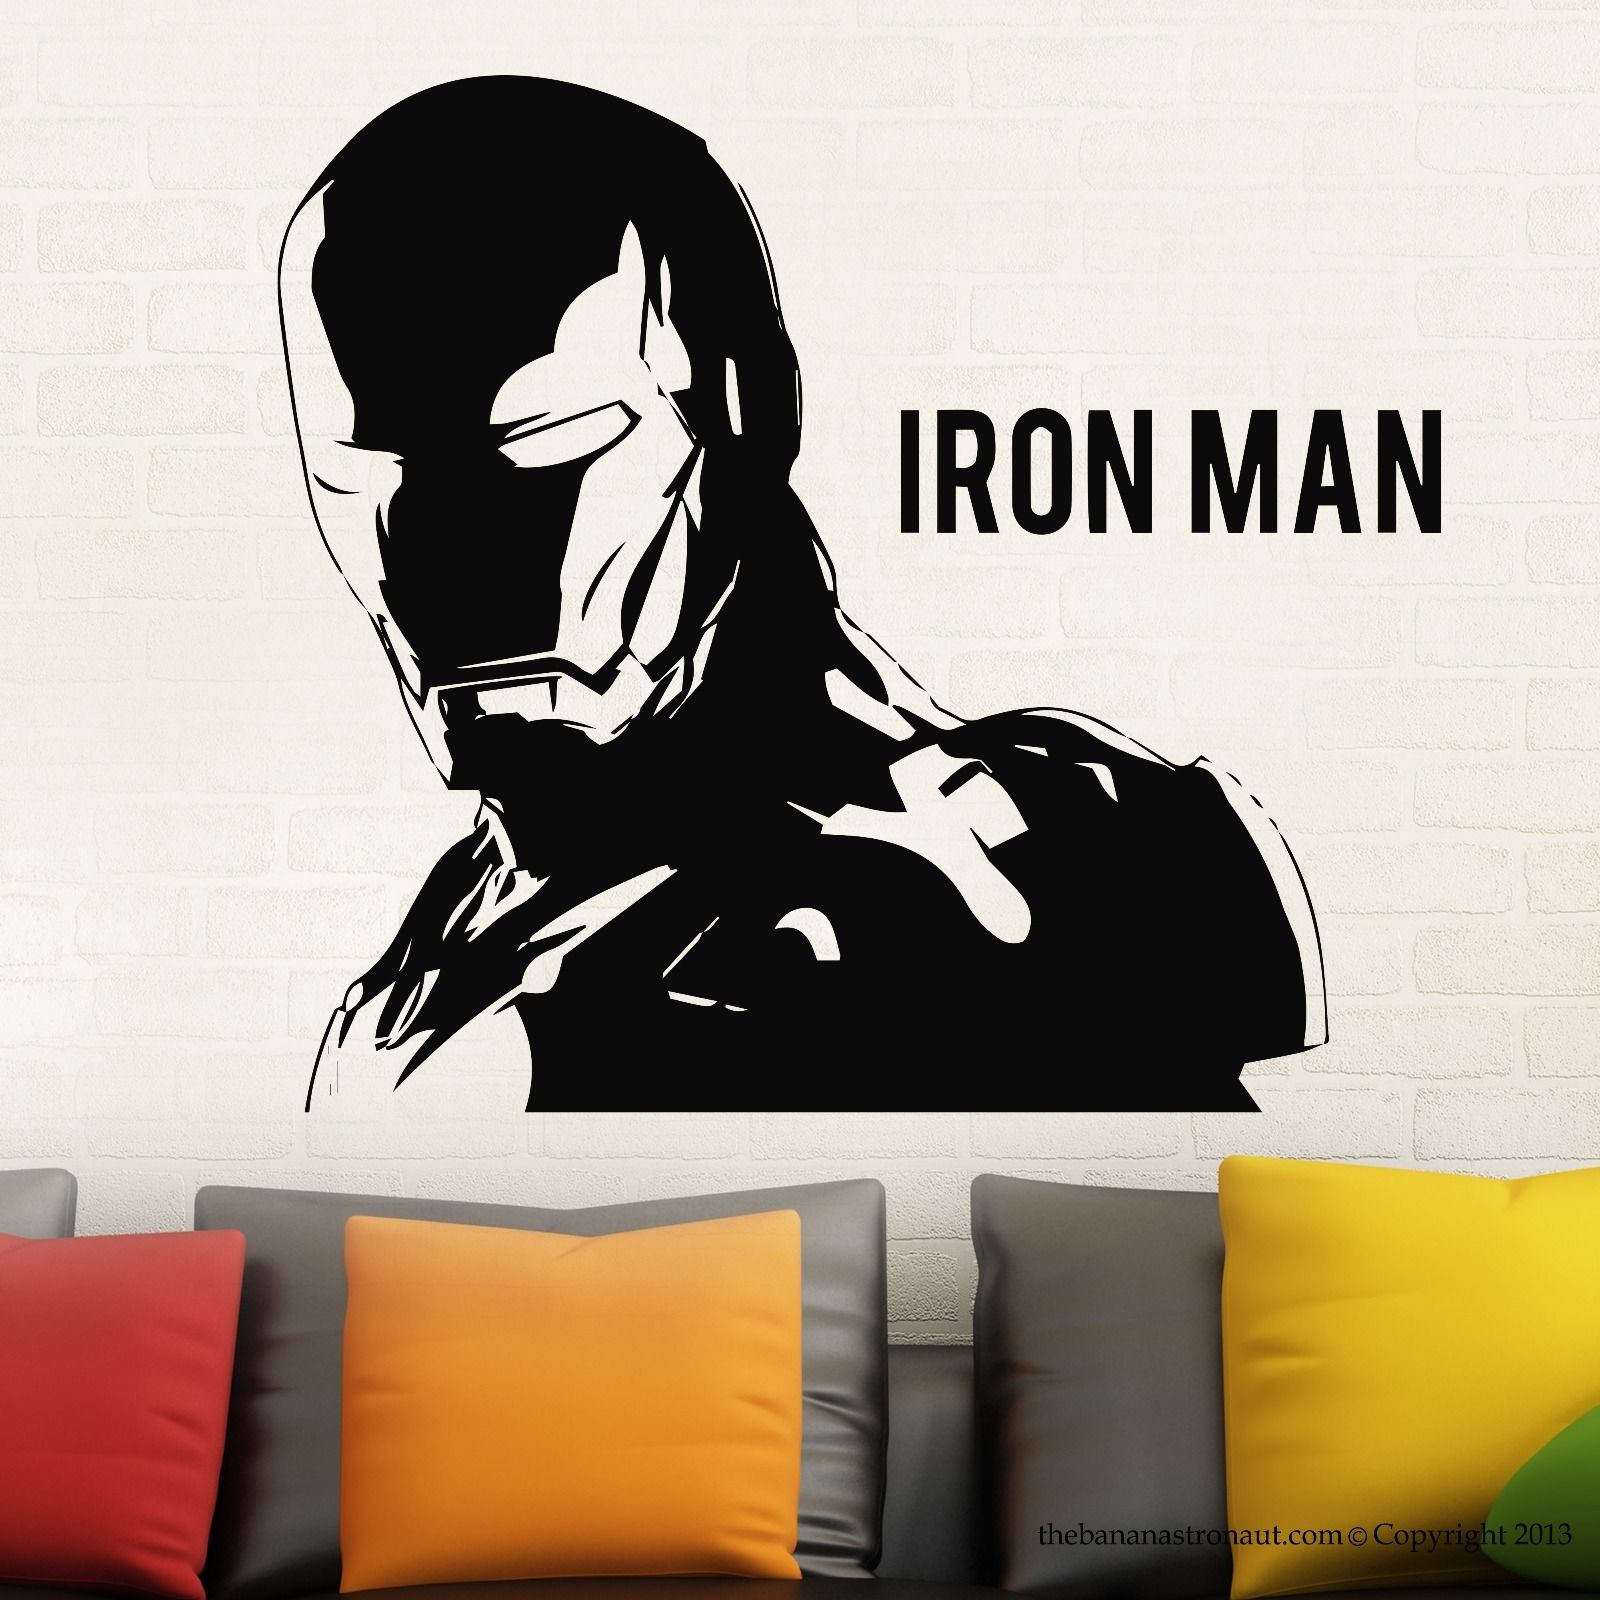 IRONMAN Wall Decal Stickers Marvel Comics Decor Modern Stickers Vinyl Black Envío gratis